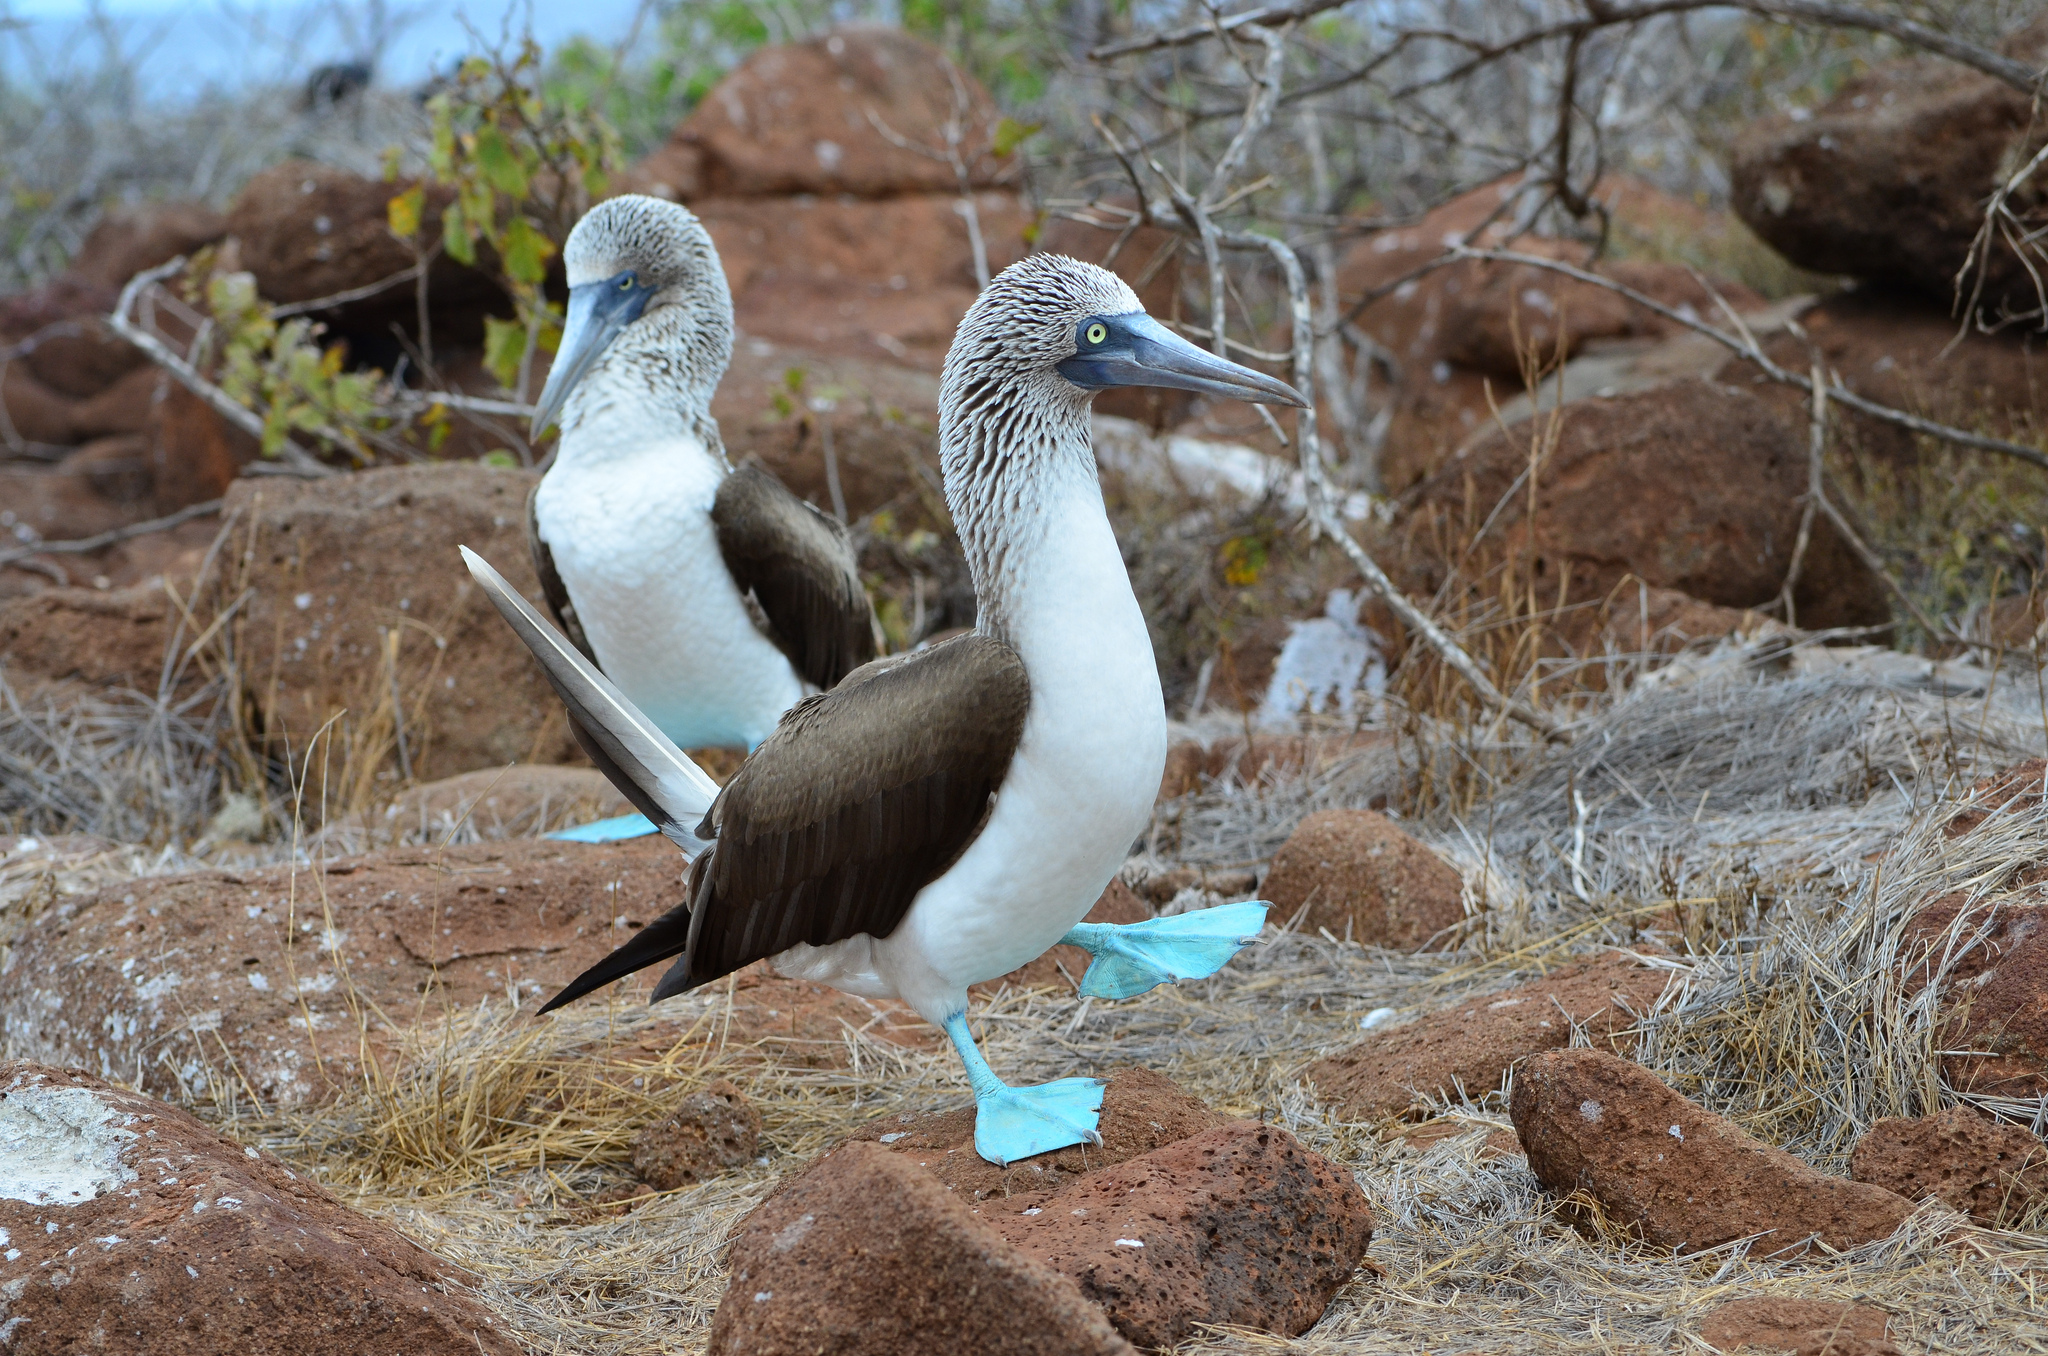 Sighting the blue footed boobie is one of the top reasons to visit the Galapagos Islands ... photo by CC user krawczuk on Flickr